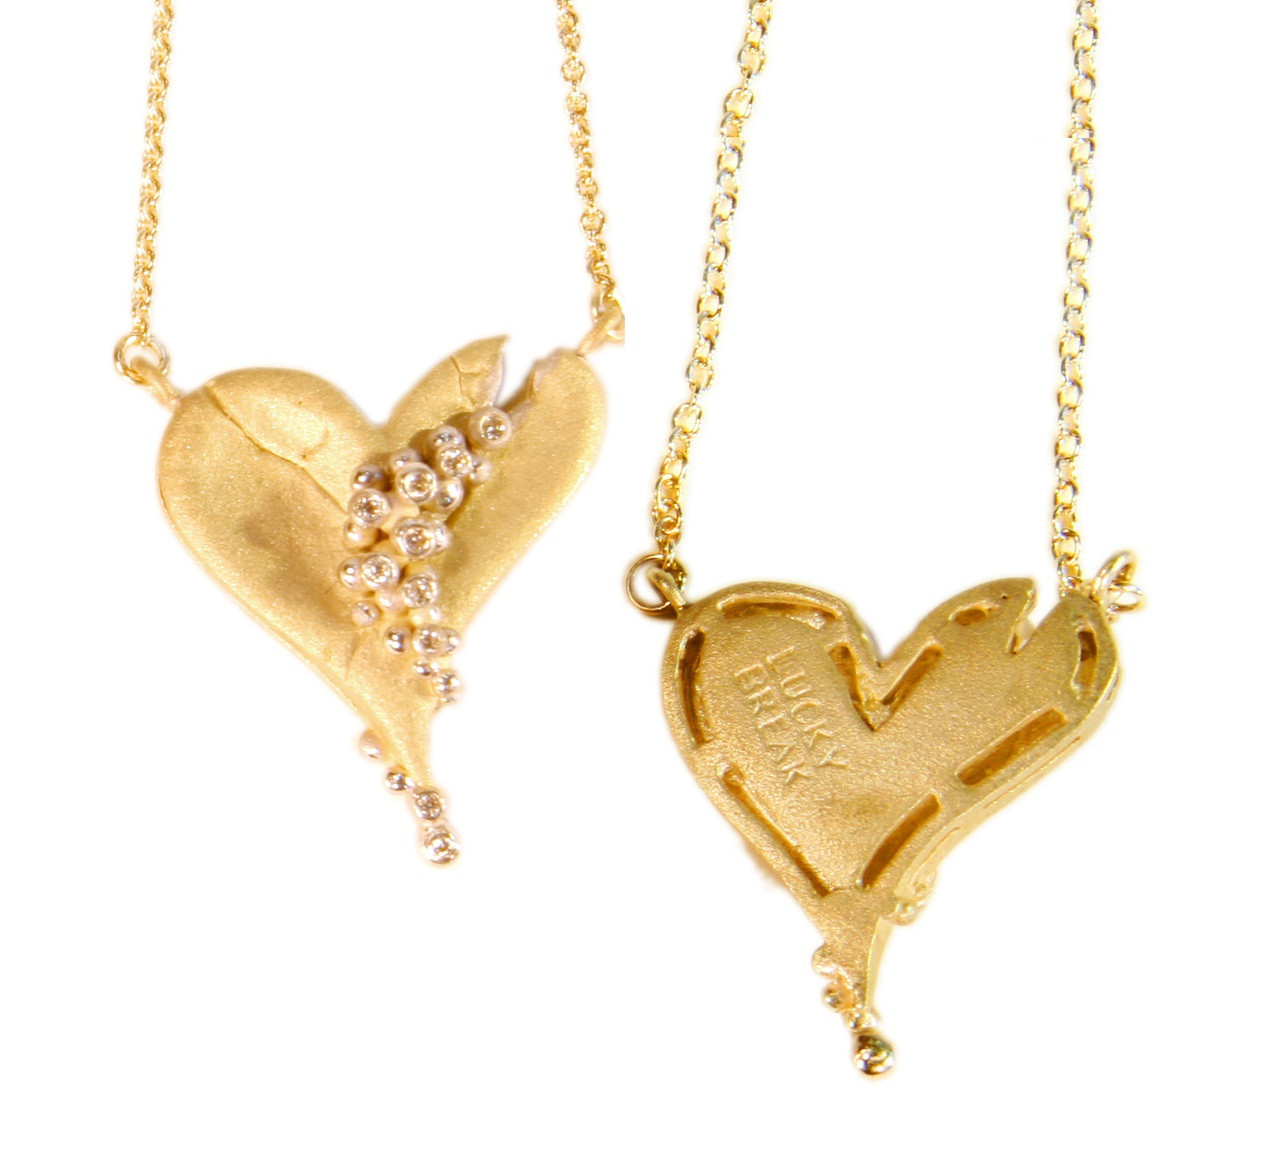 Hearts-Lucky Break Necklace-Small-14K with diamonds